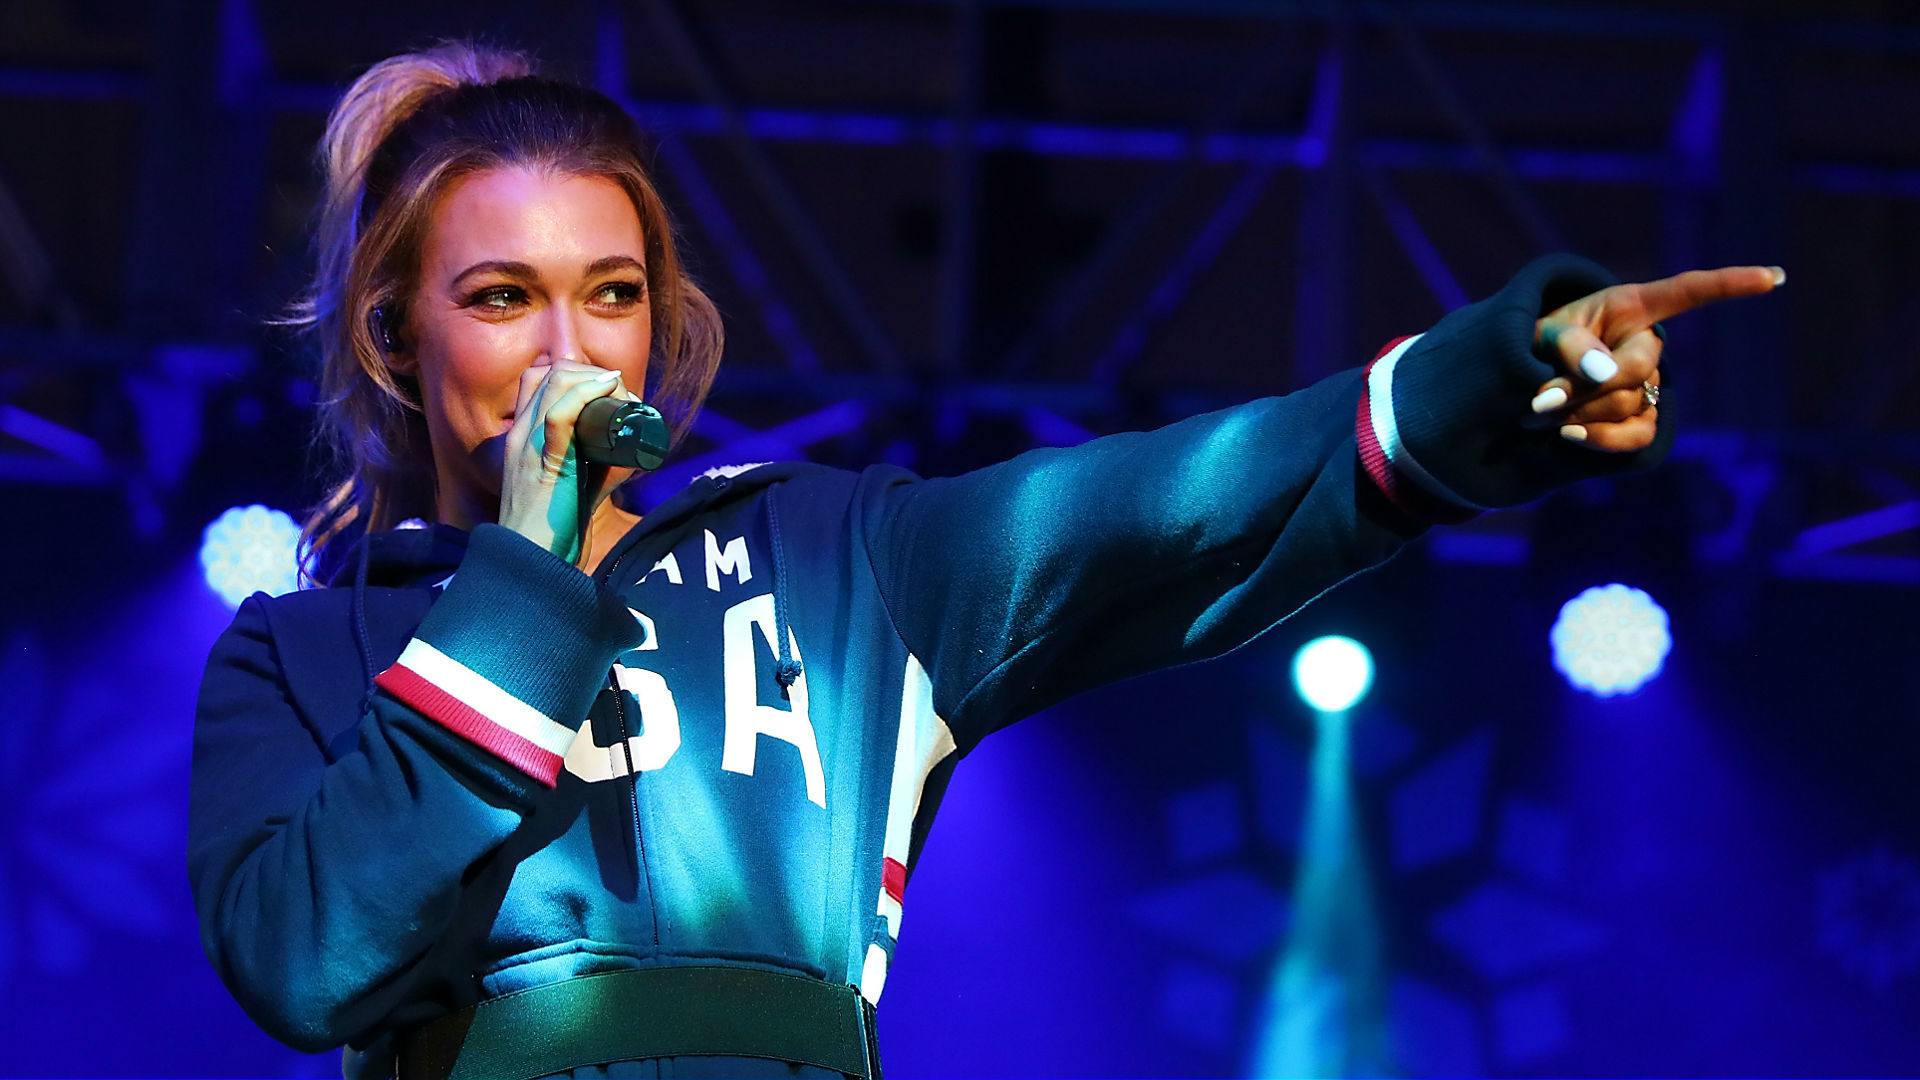 Rachel Platten Bombs the National Anthem Before NWSL Game